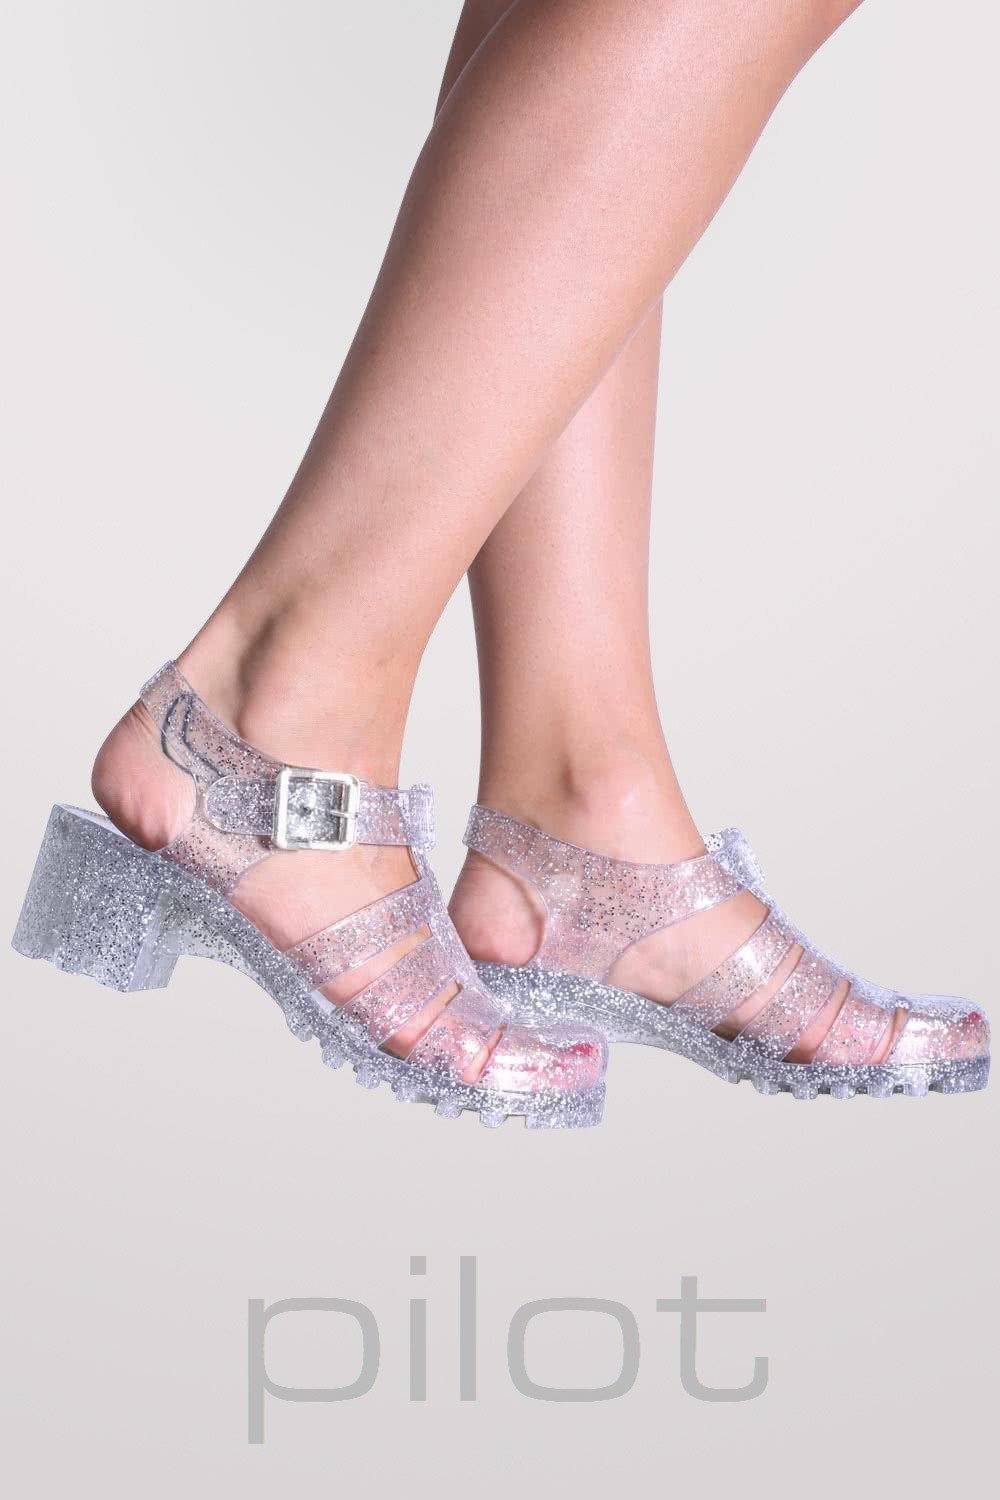 de12cc324f33 Jelly Shoes in Clear Glitter with Block Heels Sandals Adult Womens ...